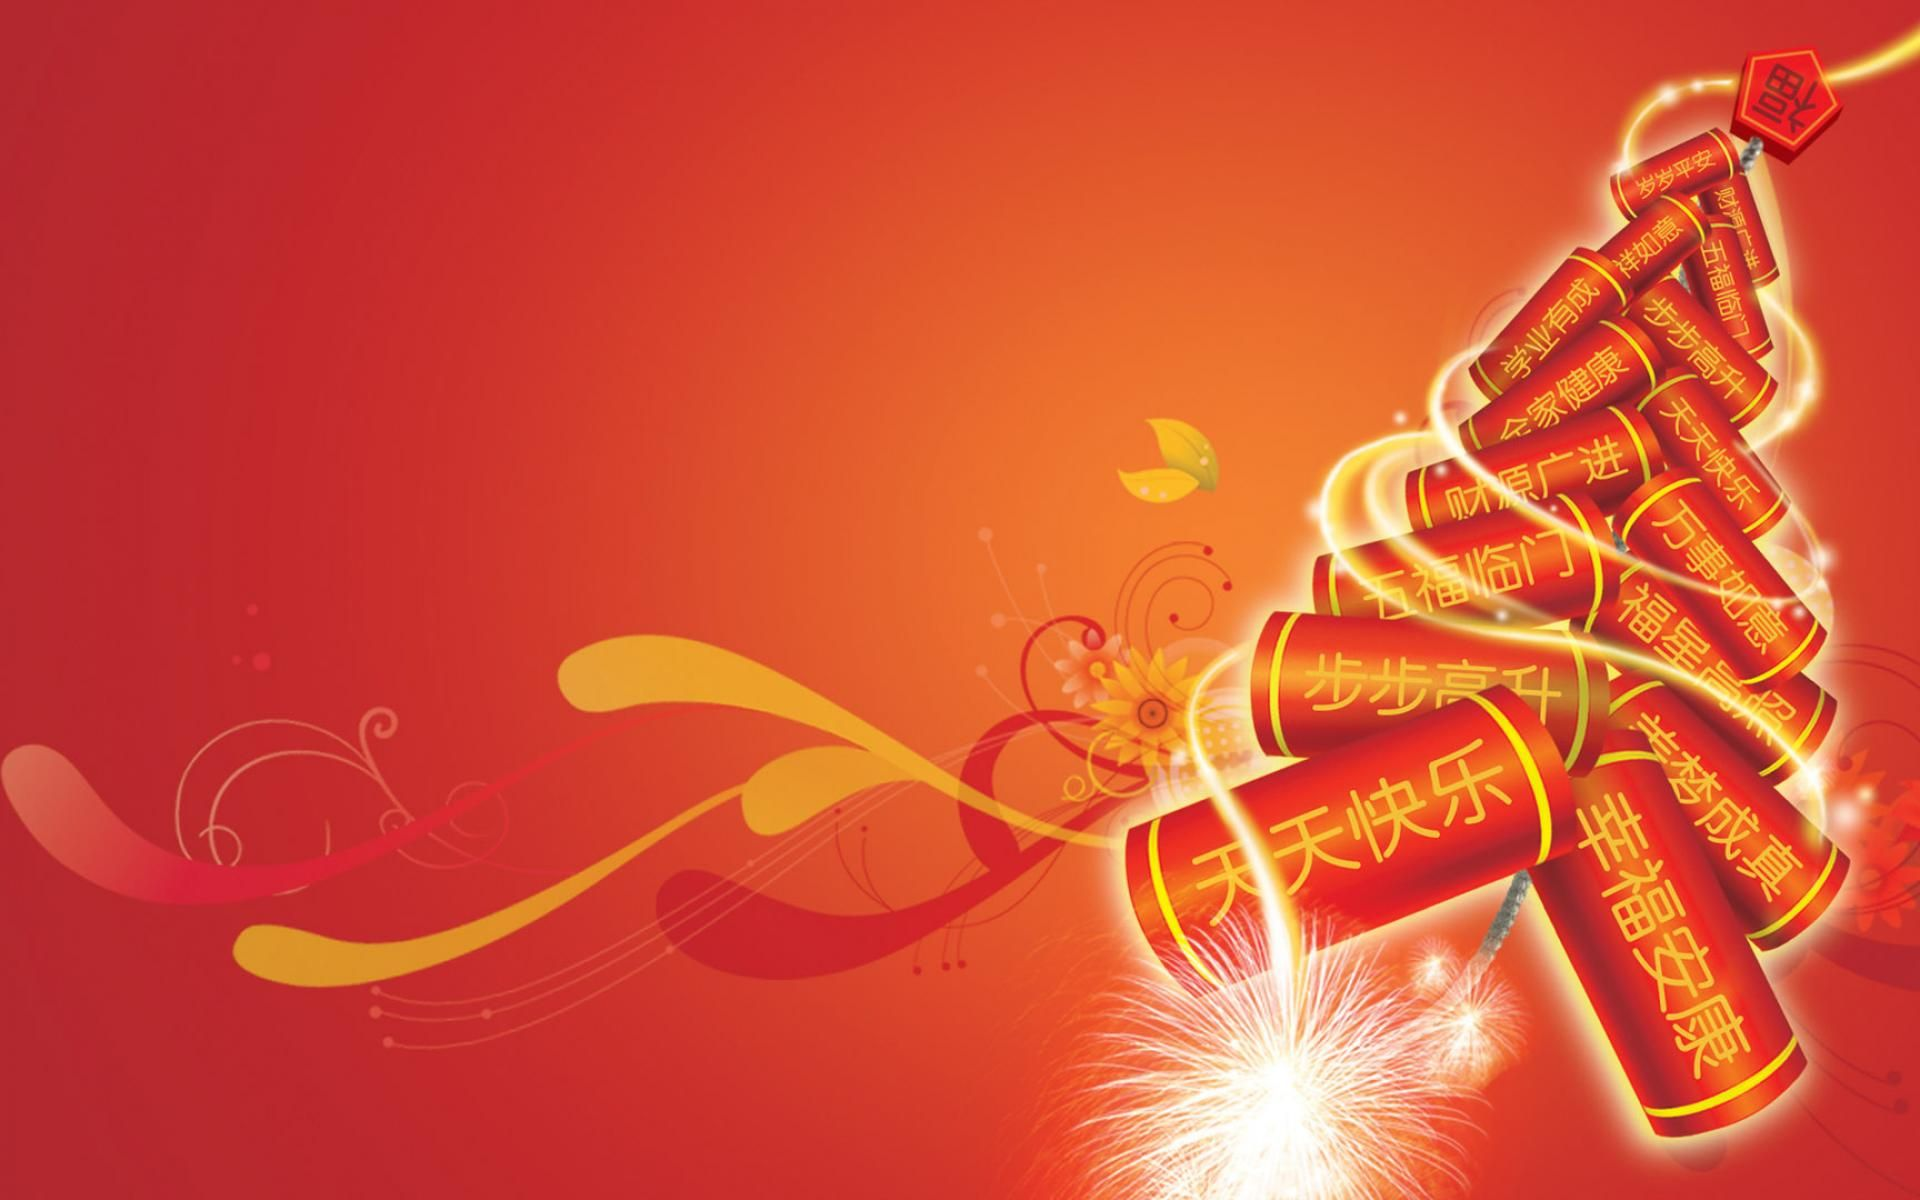 25 best chinese new year pictures and images chinese new year wishes wallpaper m4hsunfo